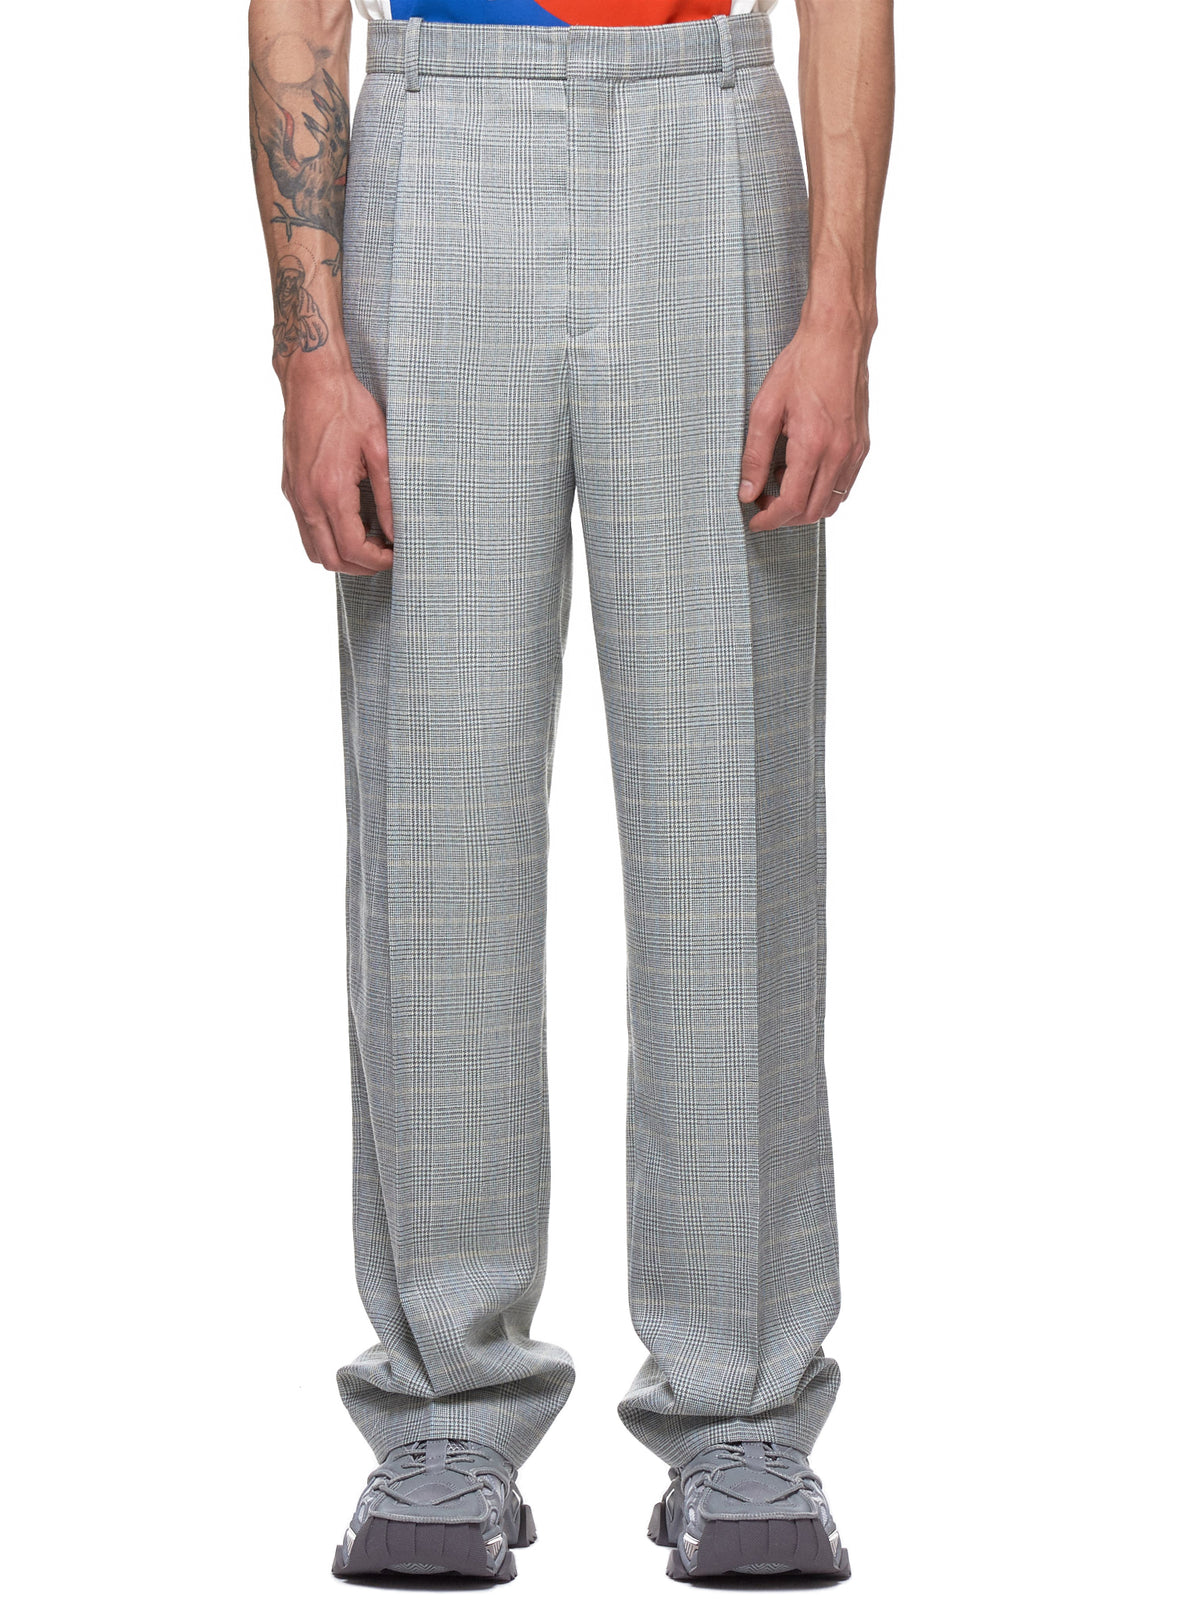 Botter Trousers - Hlorenzo Front